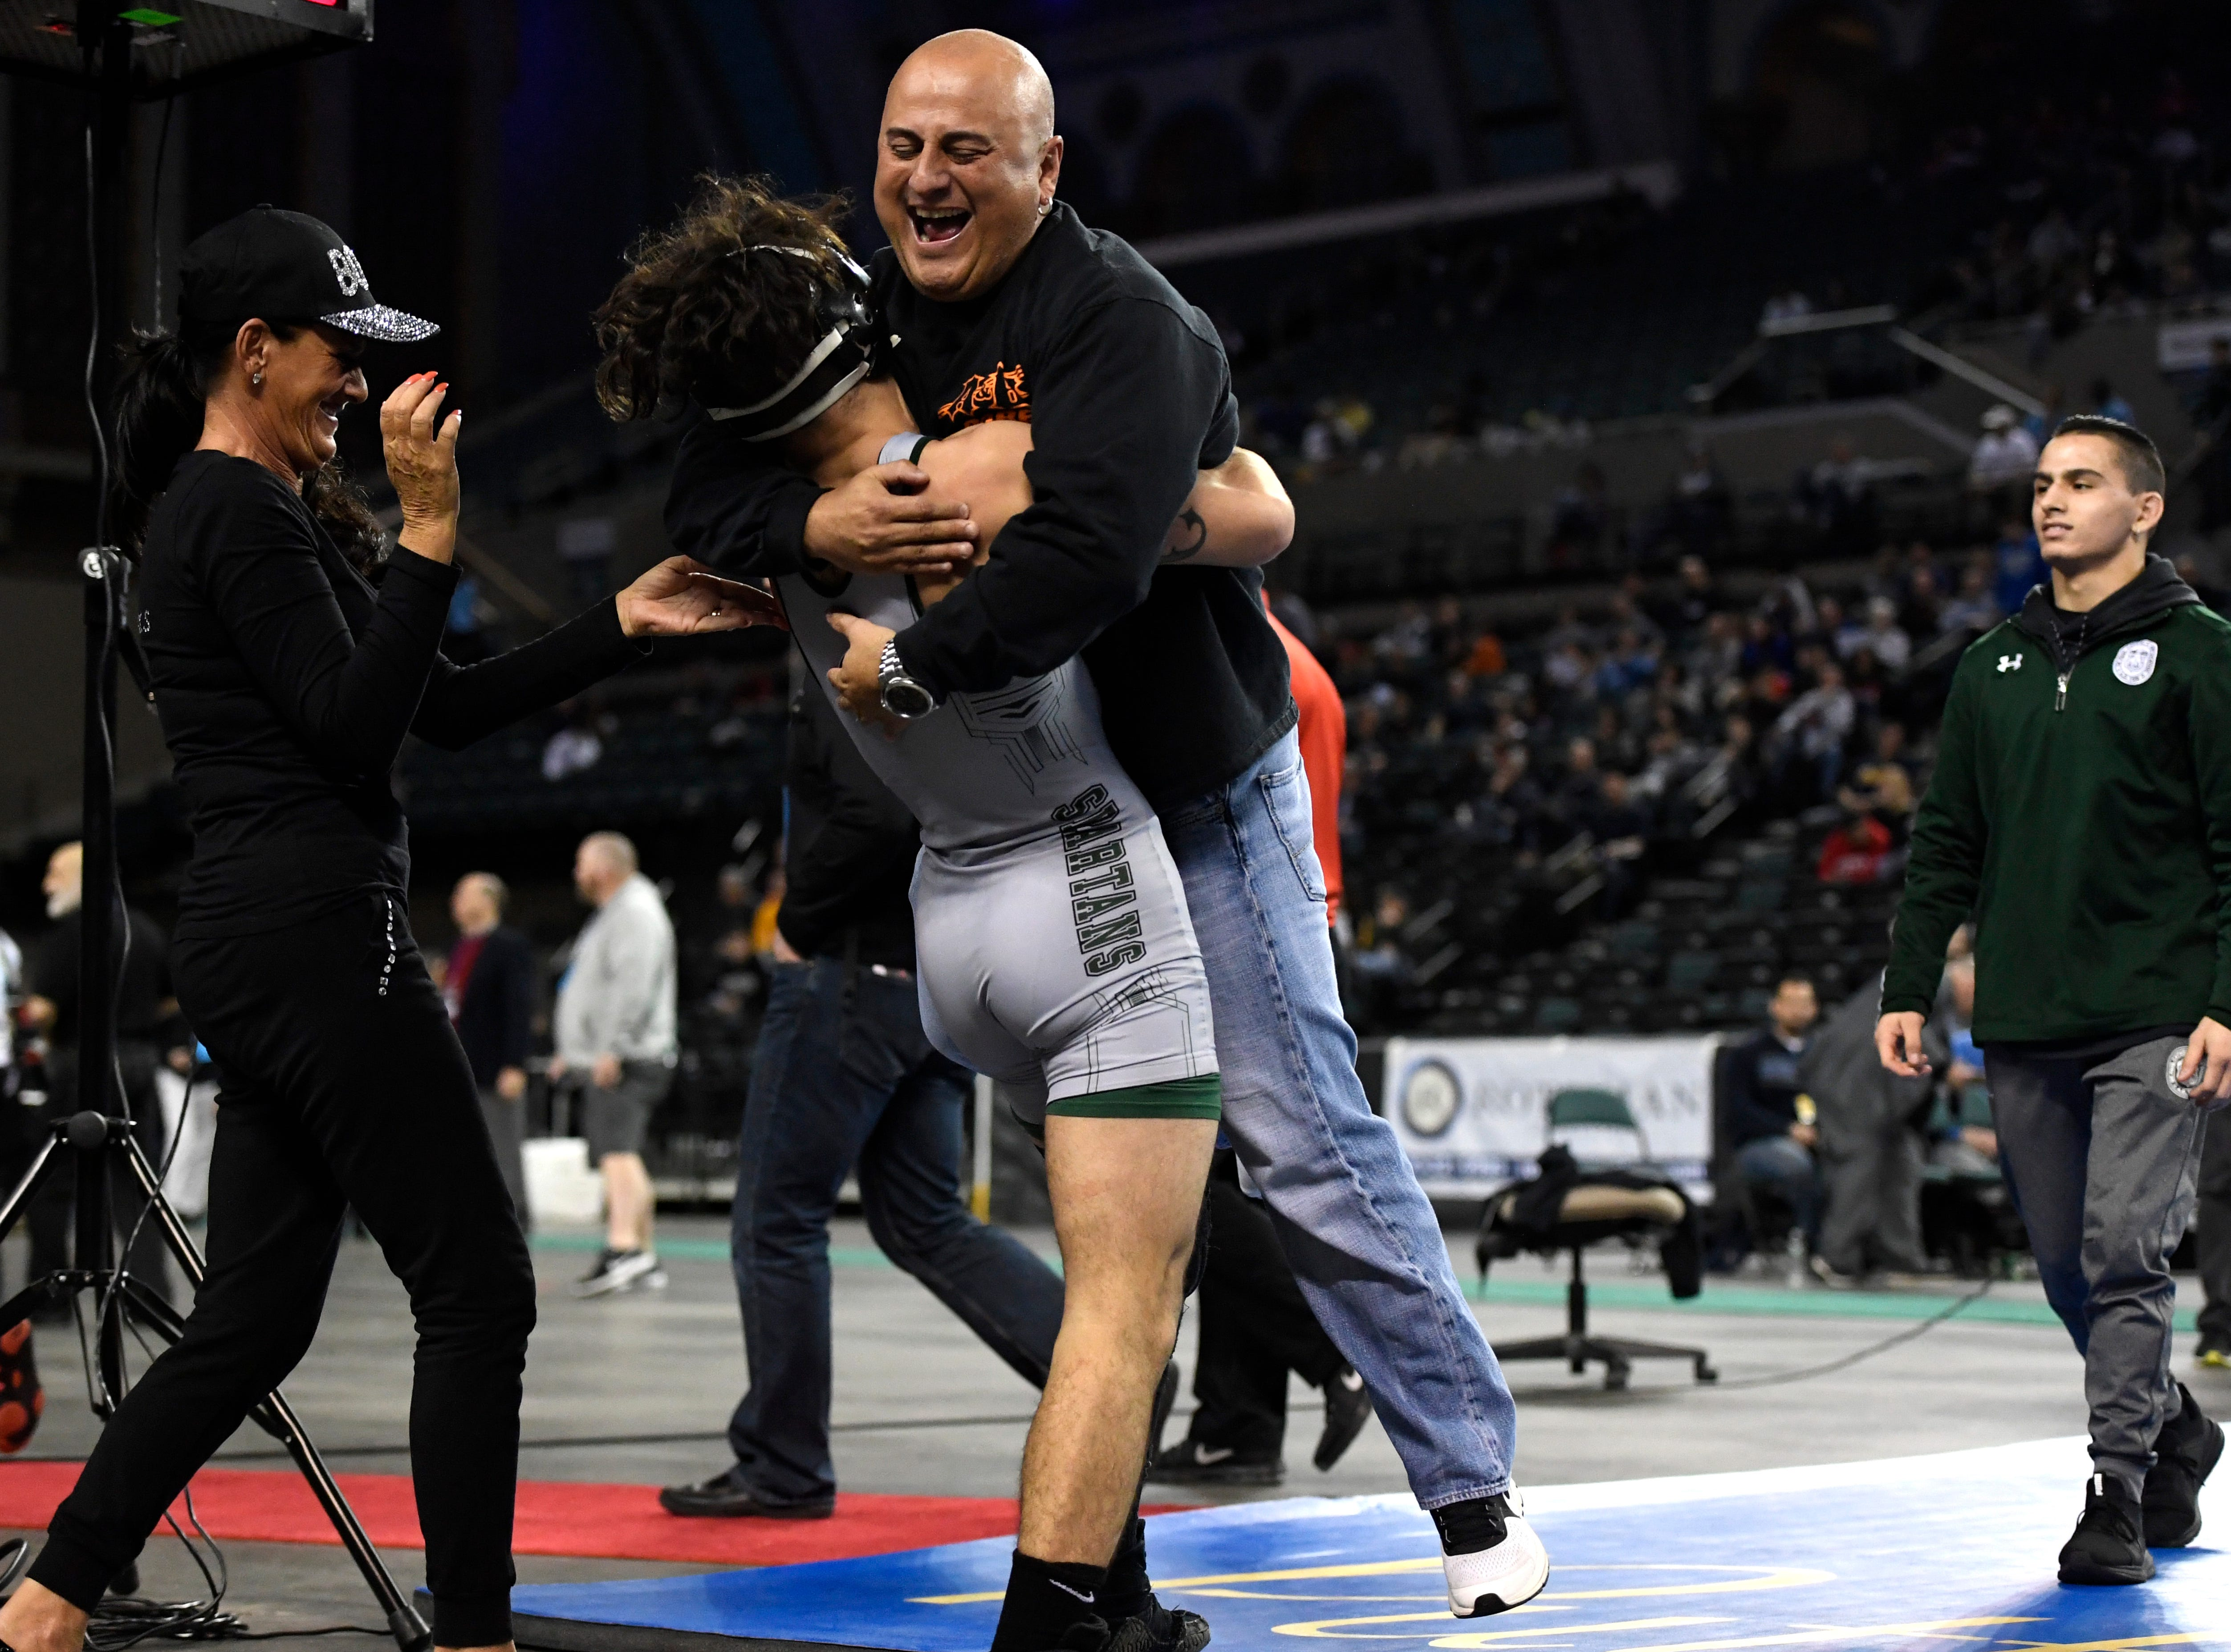 DePaul's Ricky Cabanillas lifts his father Carlos Cabanillas after winning the 145-pound title during the NJSIAA state wrestling championships in Atlantic City, NJ on Sunday, March 4, 2018.